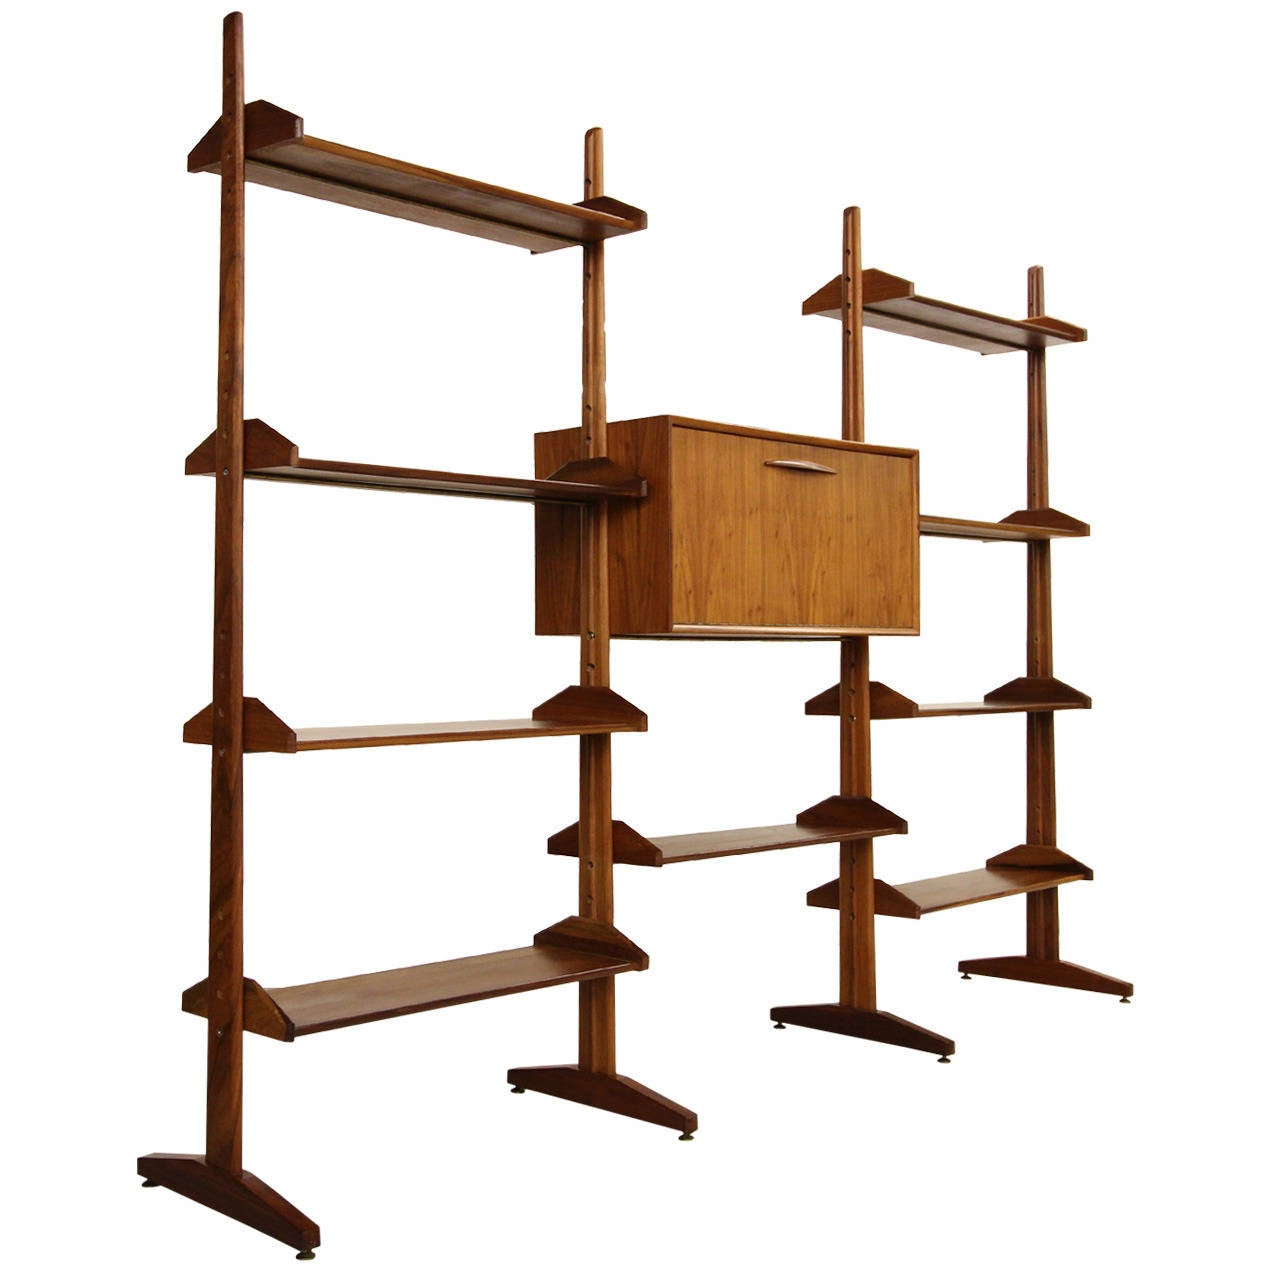 Solid Walnut And Brass Room Divider Shelving Wall Unit 1